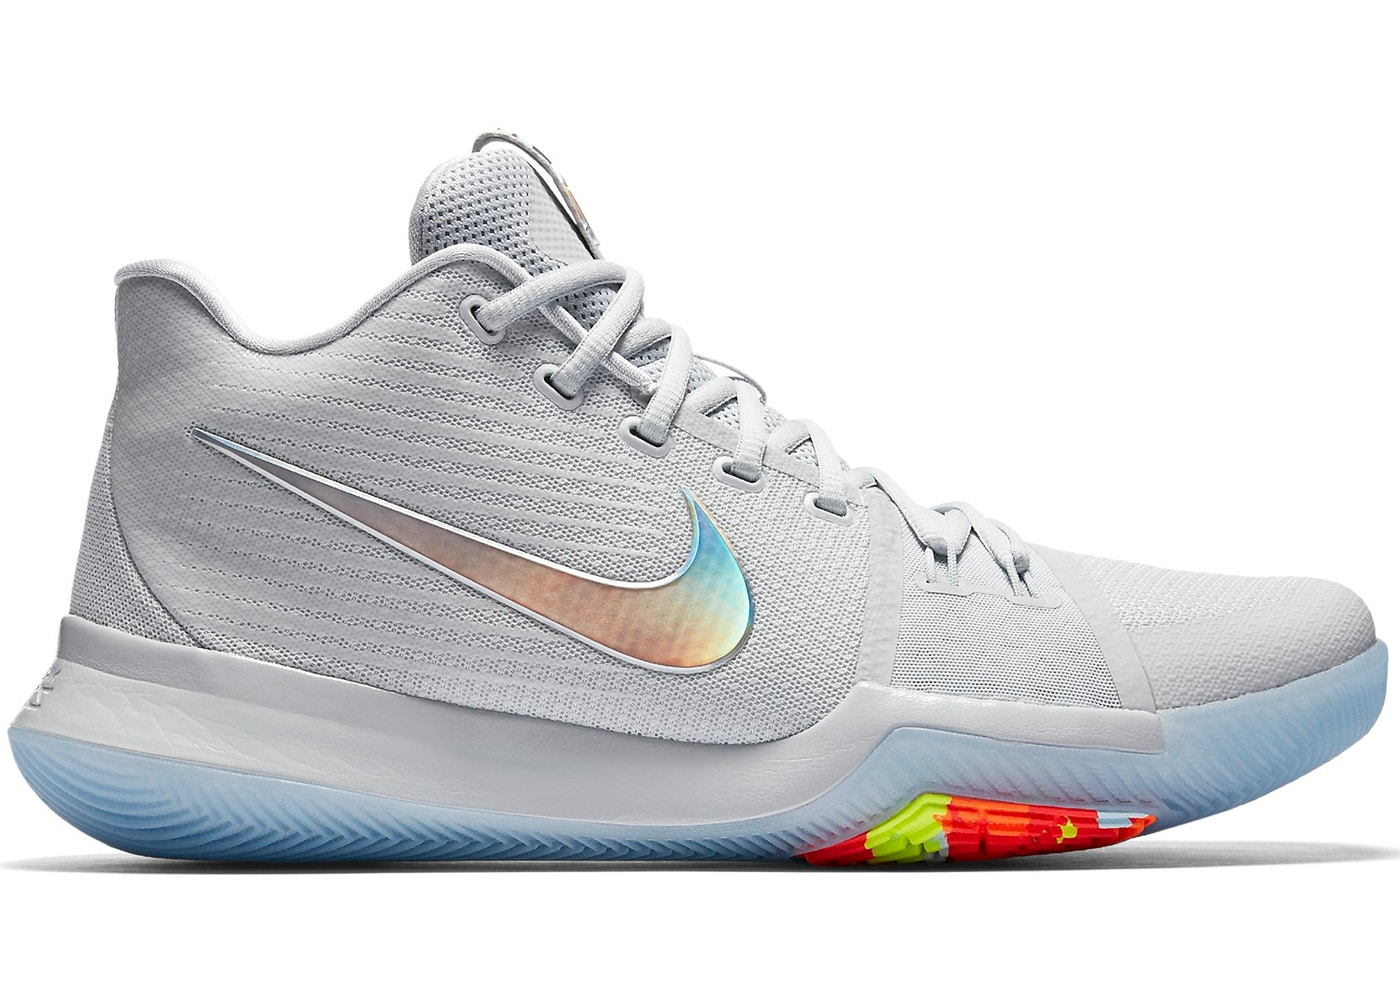 reputable site bb92e 31ce1 Buy Nike Basketball Kyrie Shoes & Deadstock Sneakers